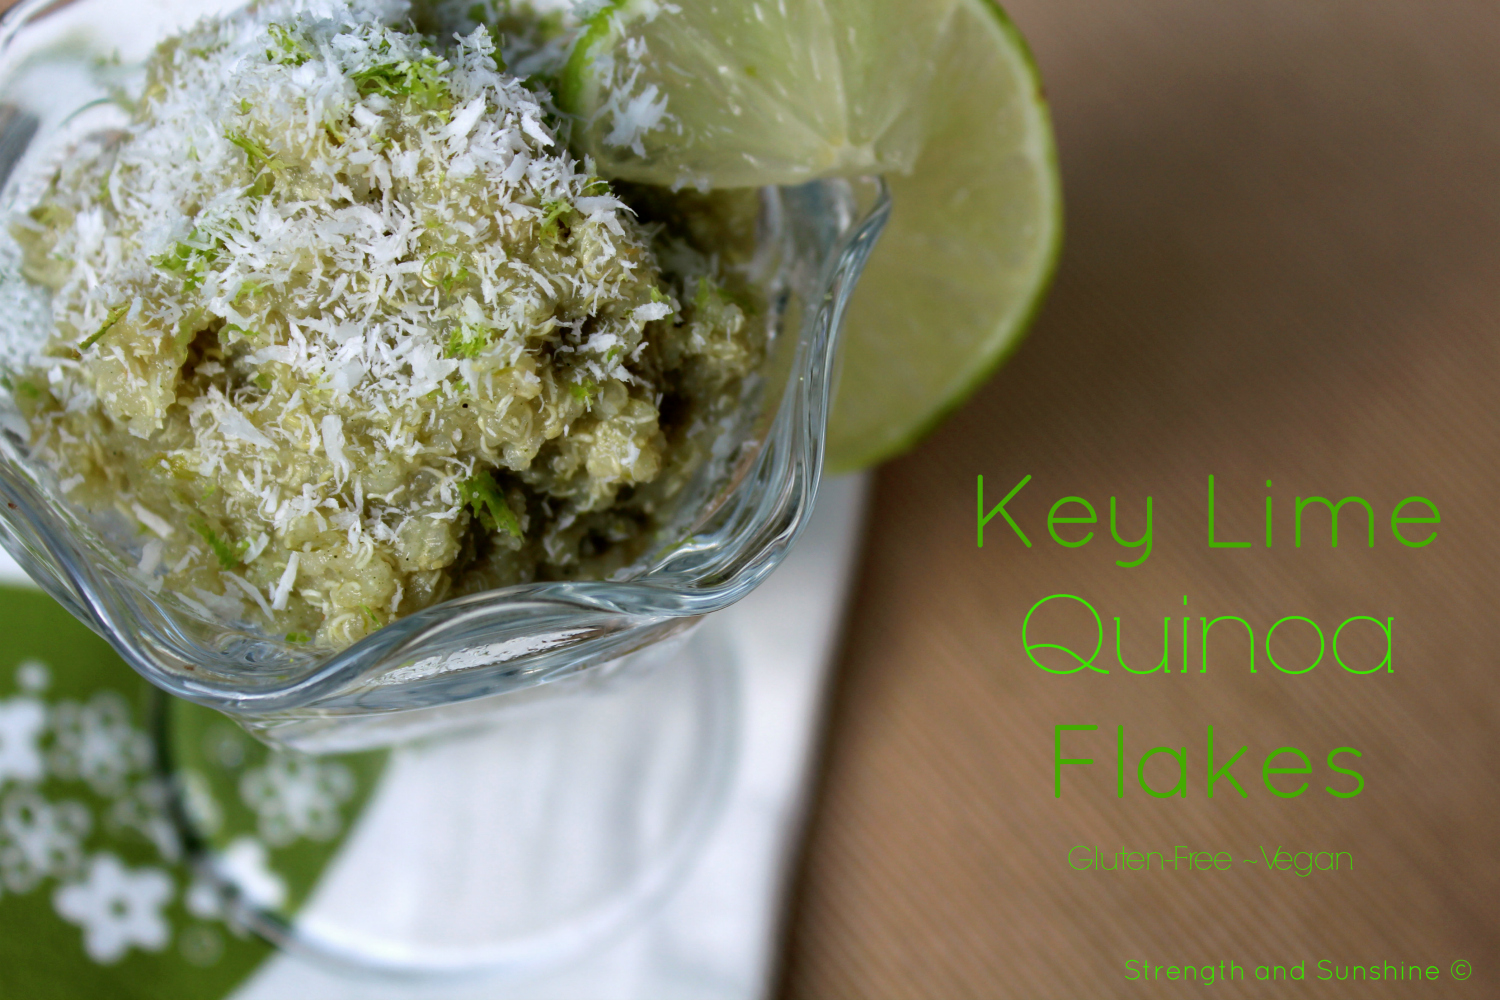 Key Lime Quinoa Flakes | Strength and Sunshine @RebeccaGF666 #breakfast #keylime #glutenfree #vegan #quinoa #quinoaflakes #soyfree